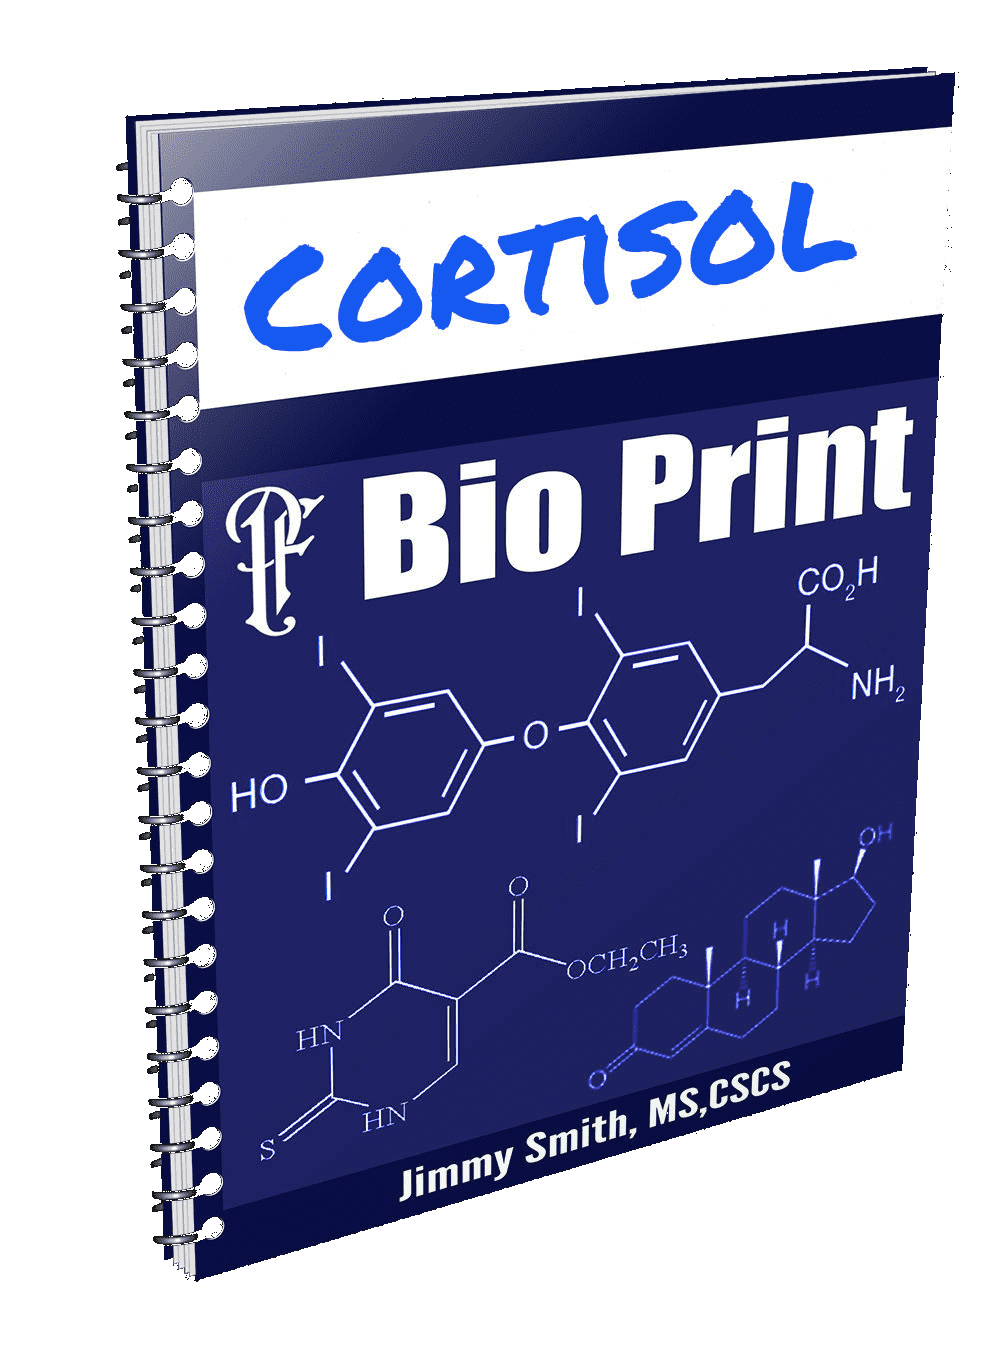 Cortisol BioPrint - Physique Formula